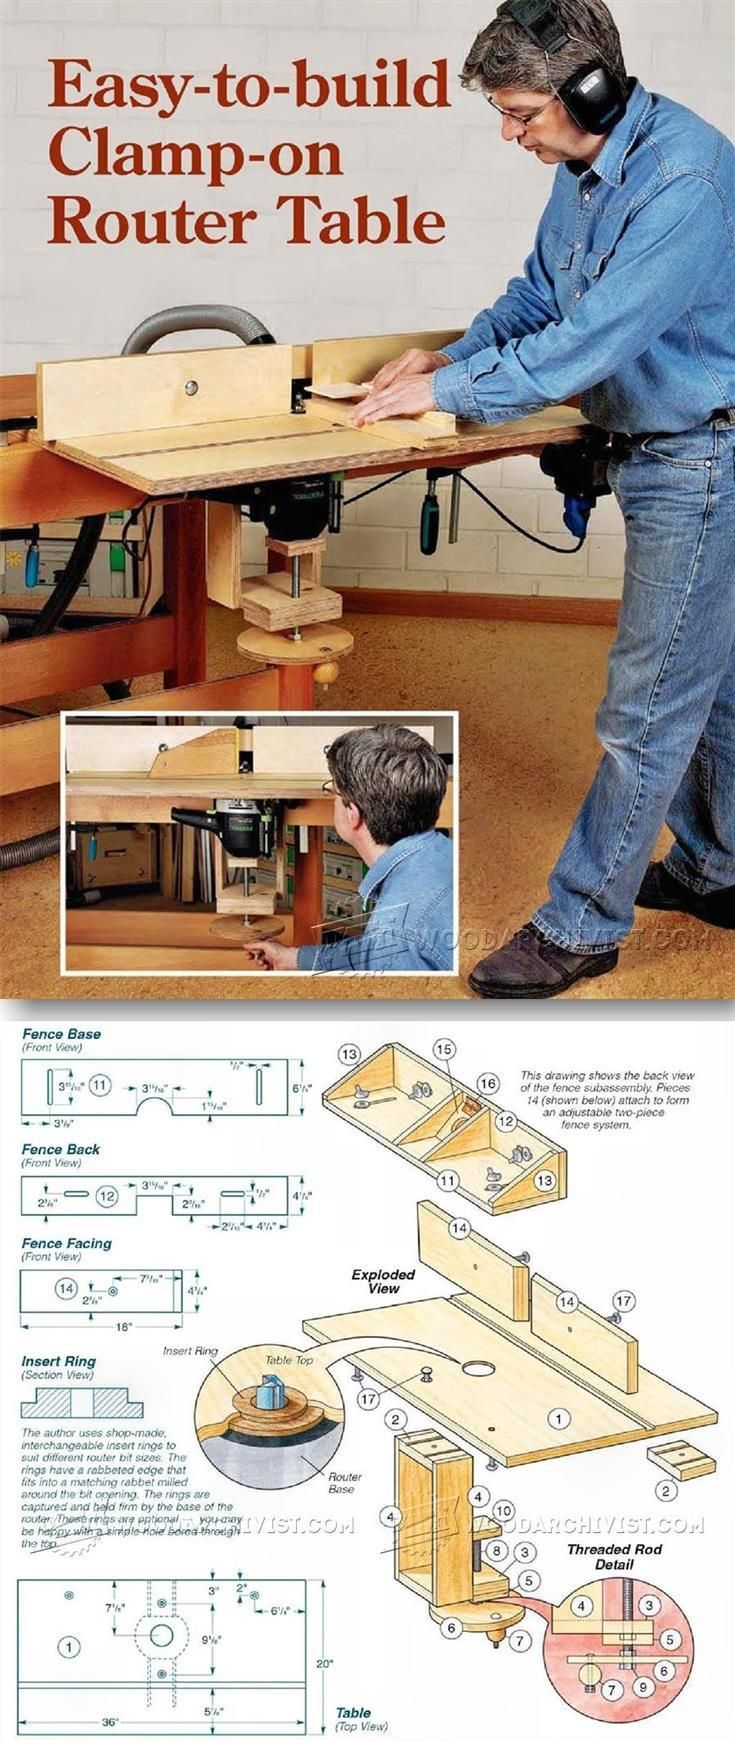 Best 25 festool router table ideas on pinterest woodworking workbench router table plans router tips jigs and fixtures woodwork woodworking woodworking plans woodworking projects keyboard keysfo Images